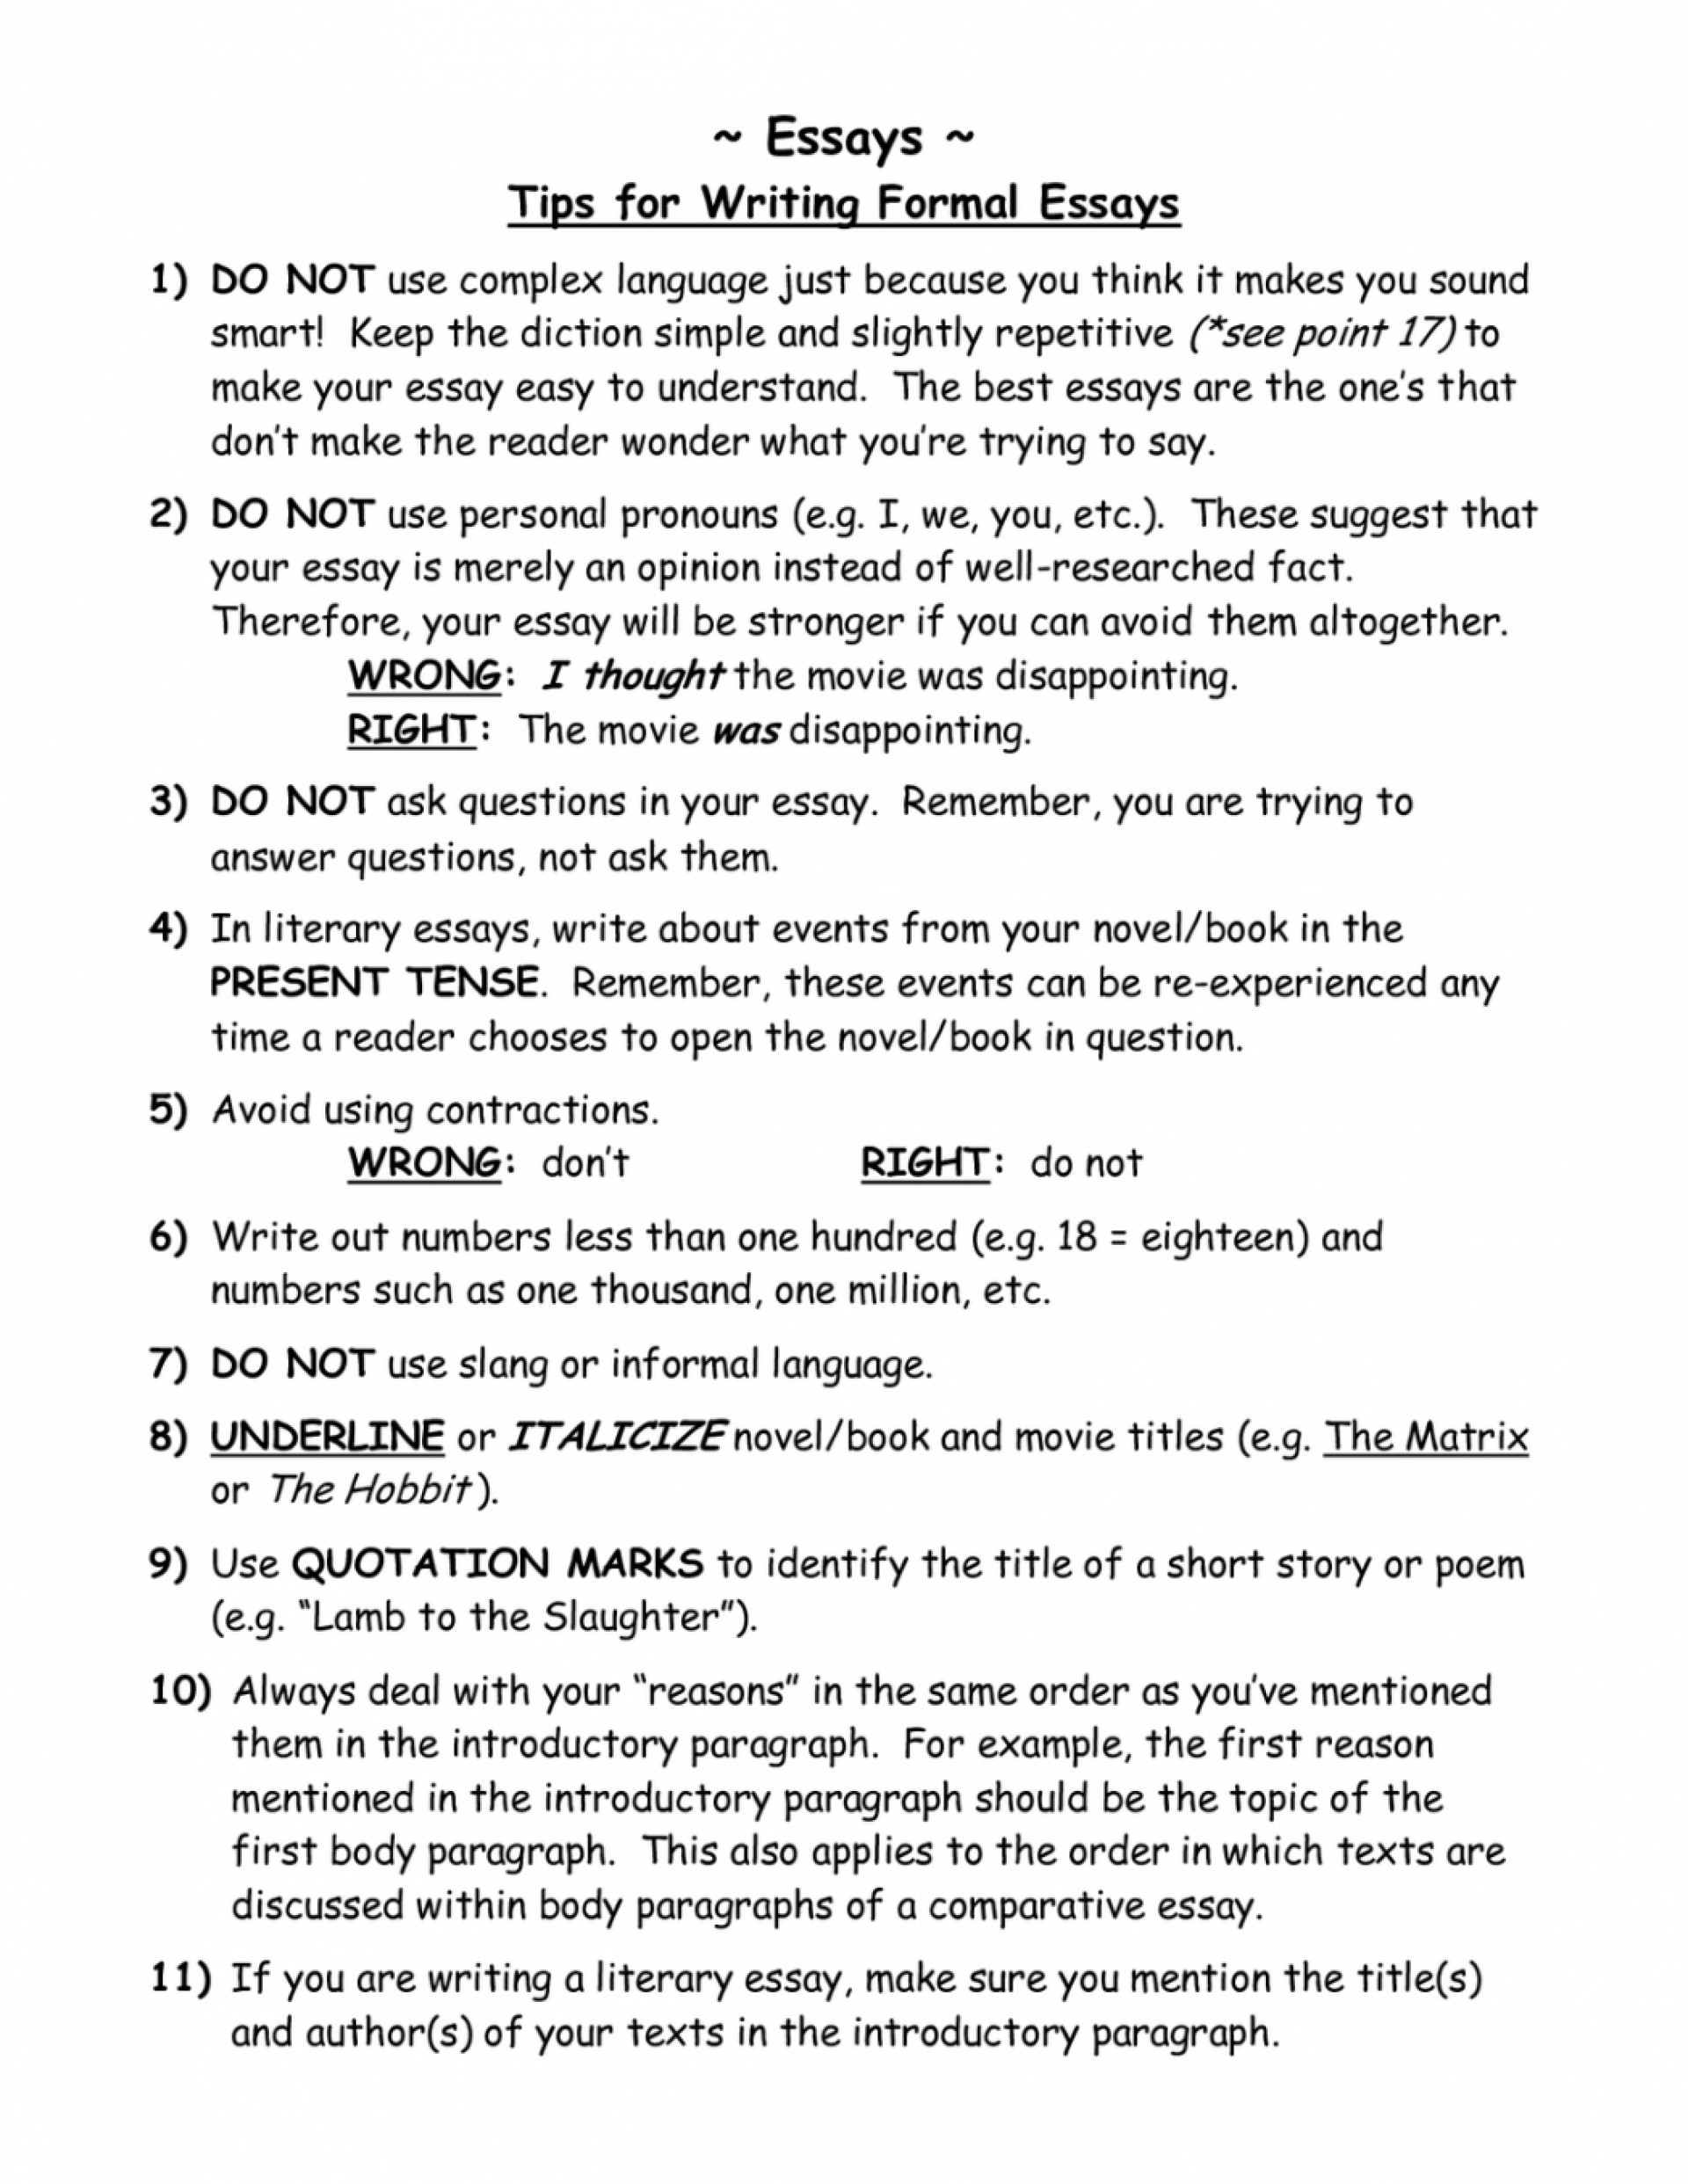 017 Discover What Not To Do When Creating School Essay Easy Way Write An On Book Books 1048x1356 Excellent Argumentative How Analytical Example In Ielts Task 2 1920